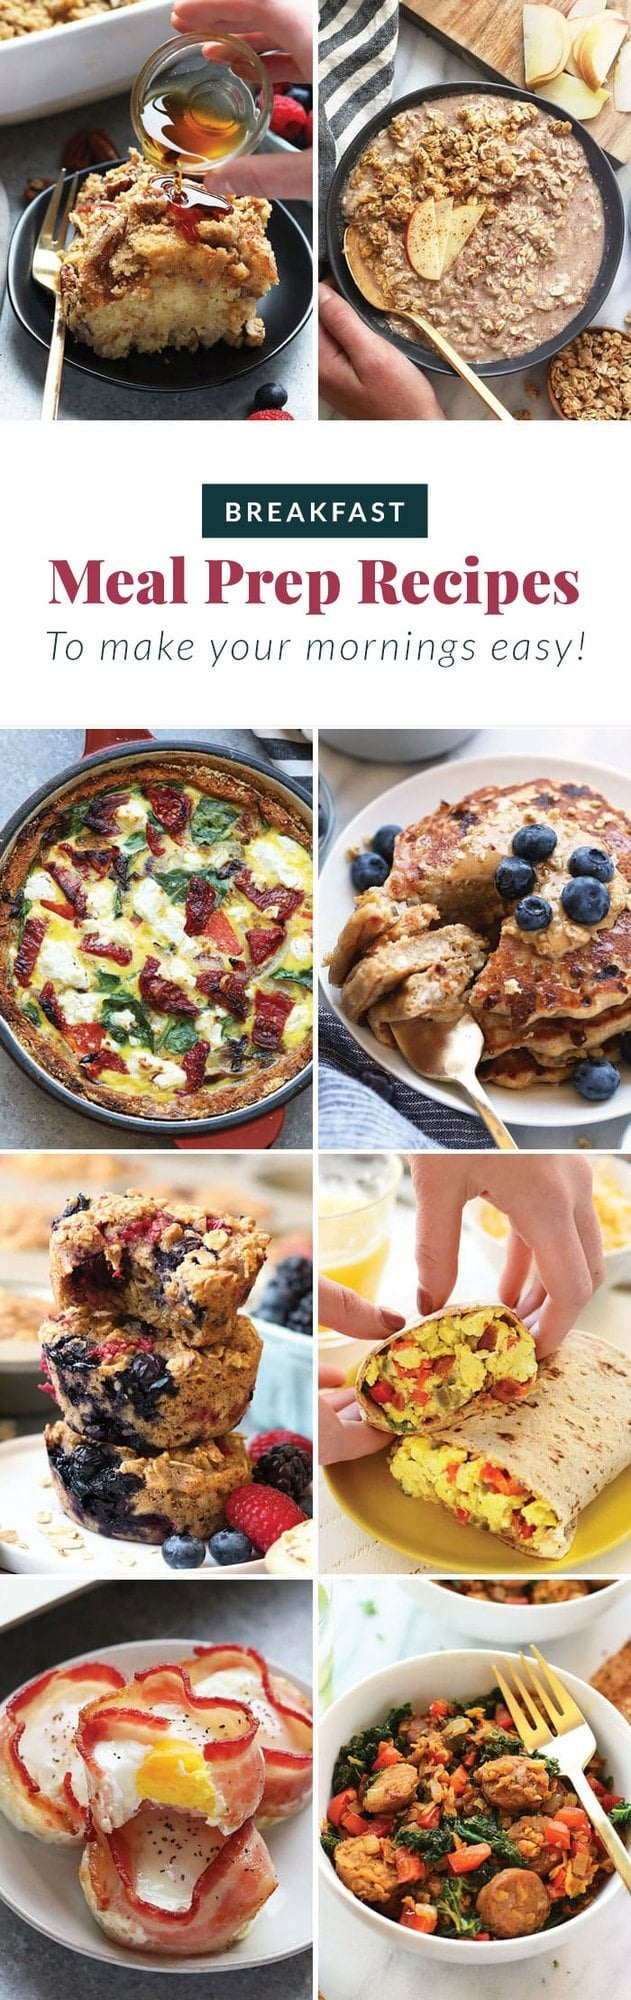 breakfast meal prep recipes